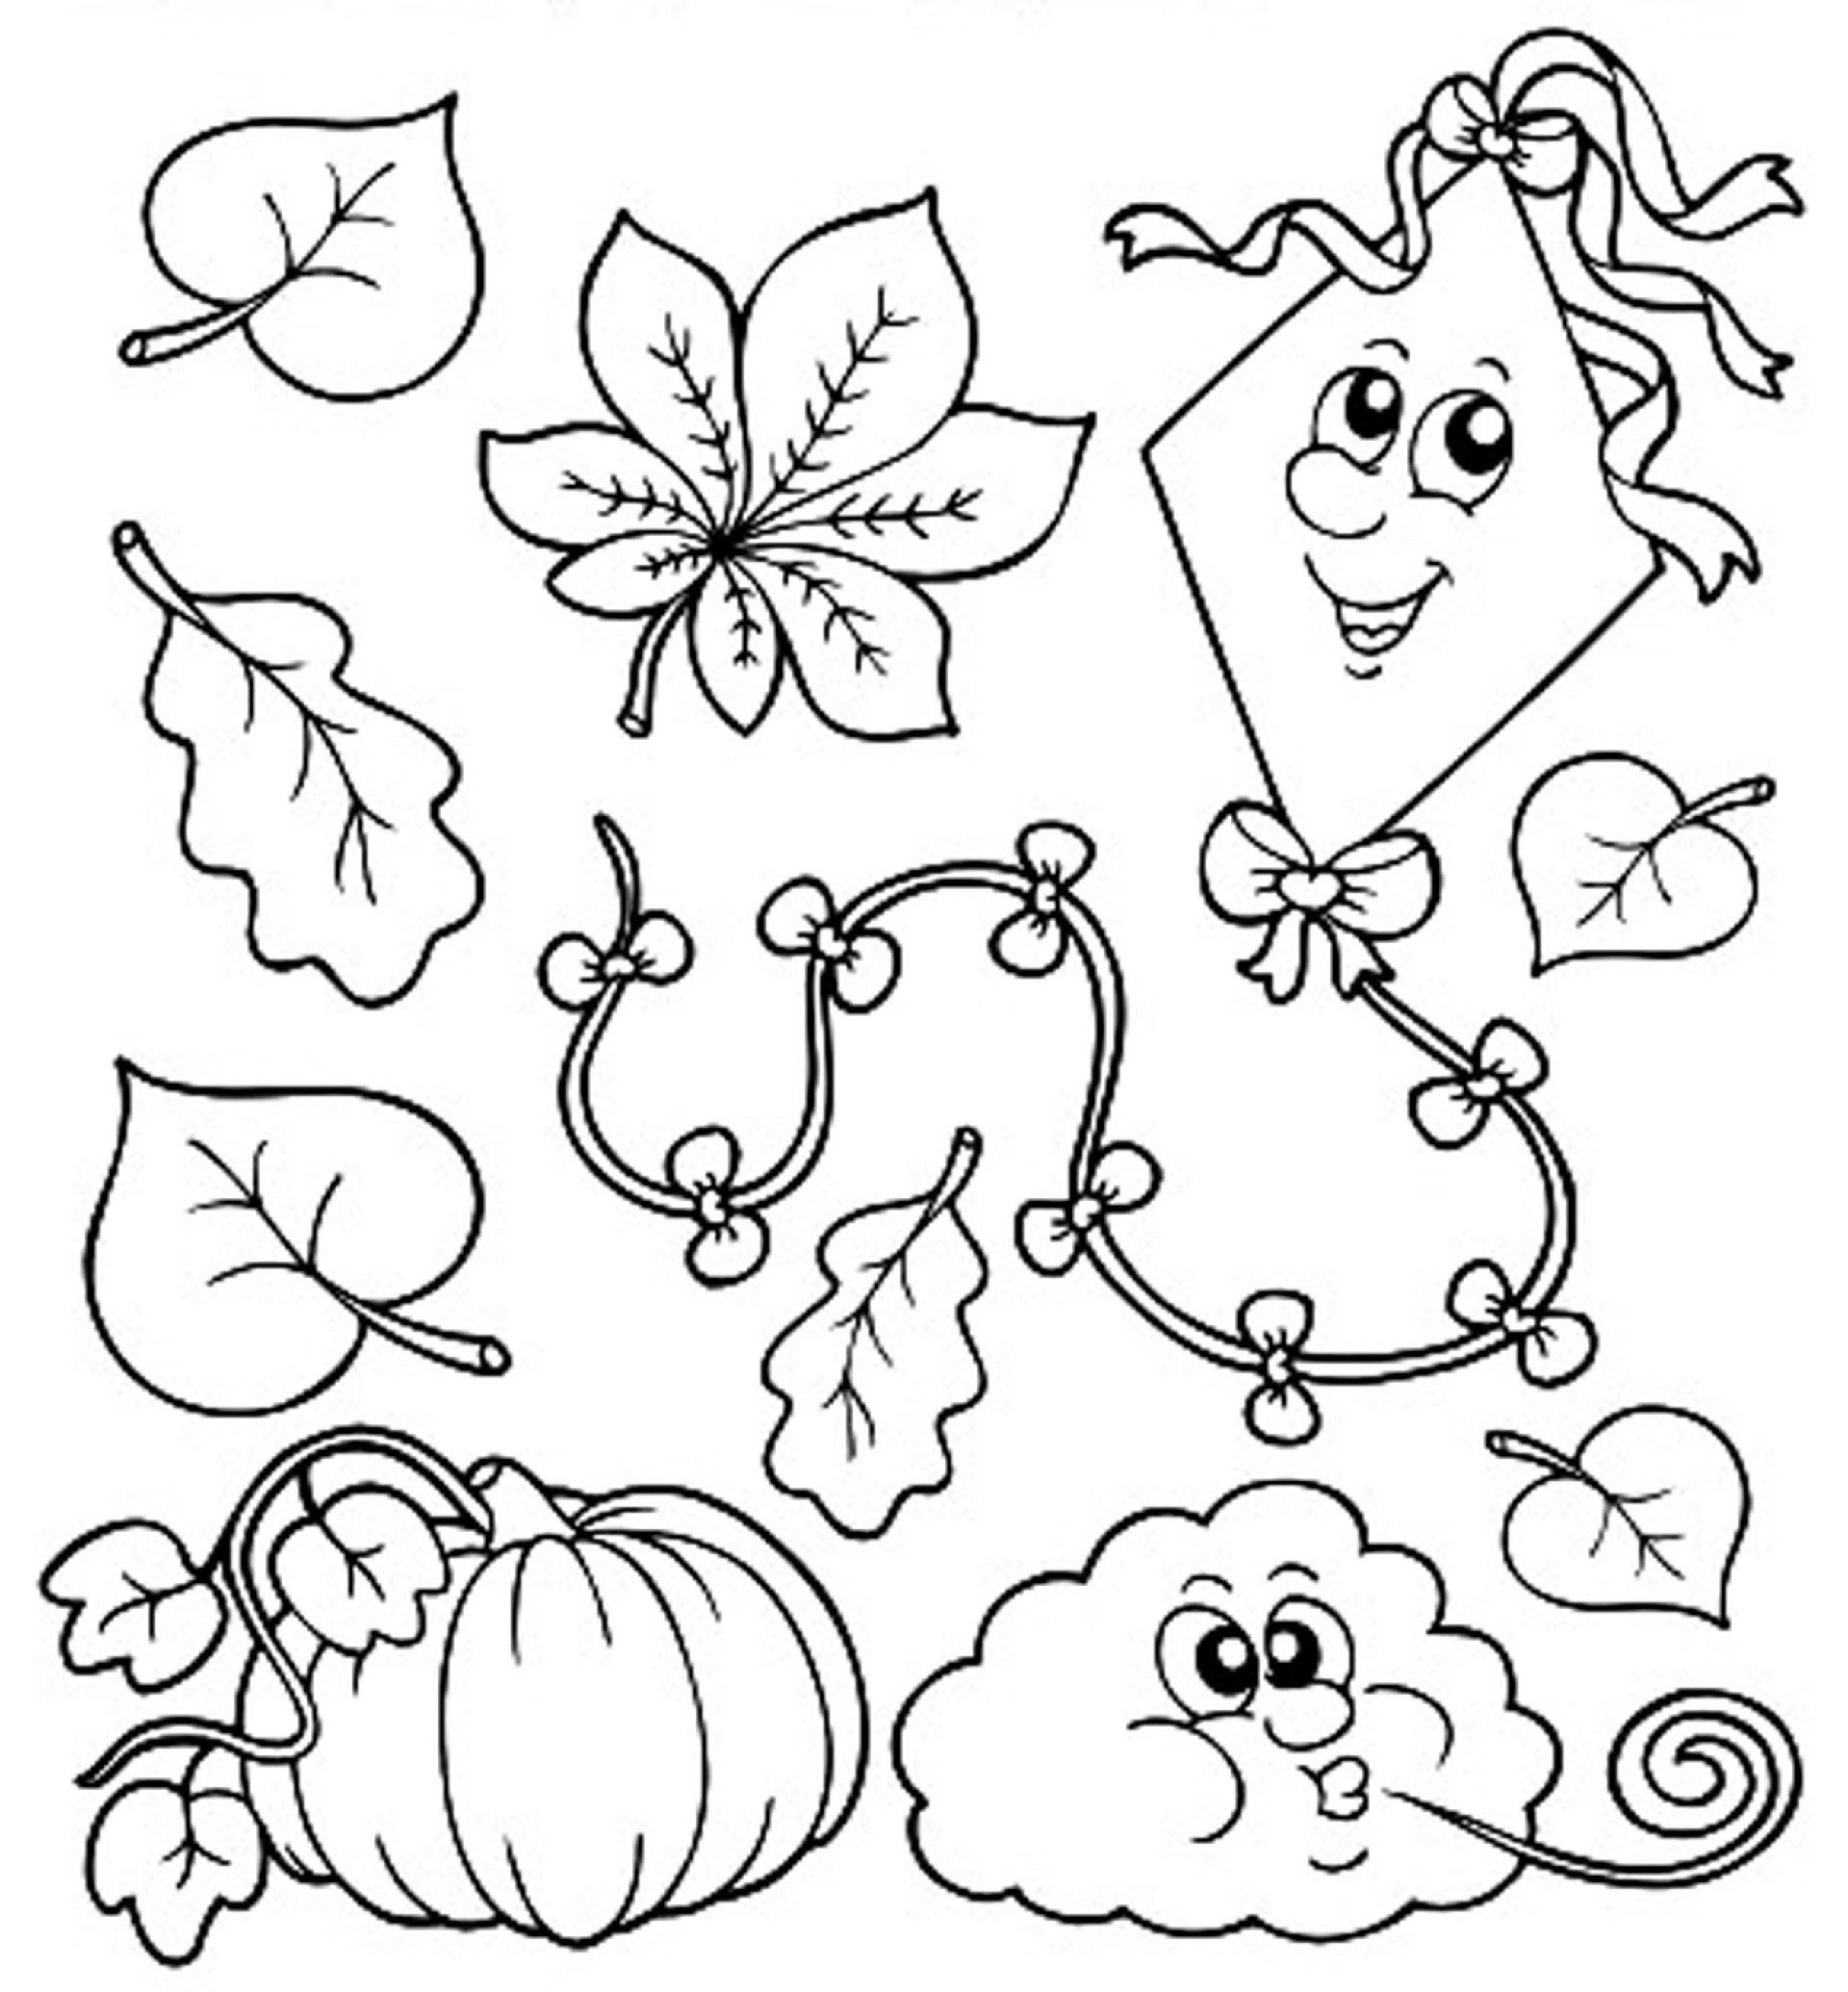 78 EASY FALL LEAVES COLORING PAGES FOR KINDERGARTEN ...